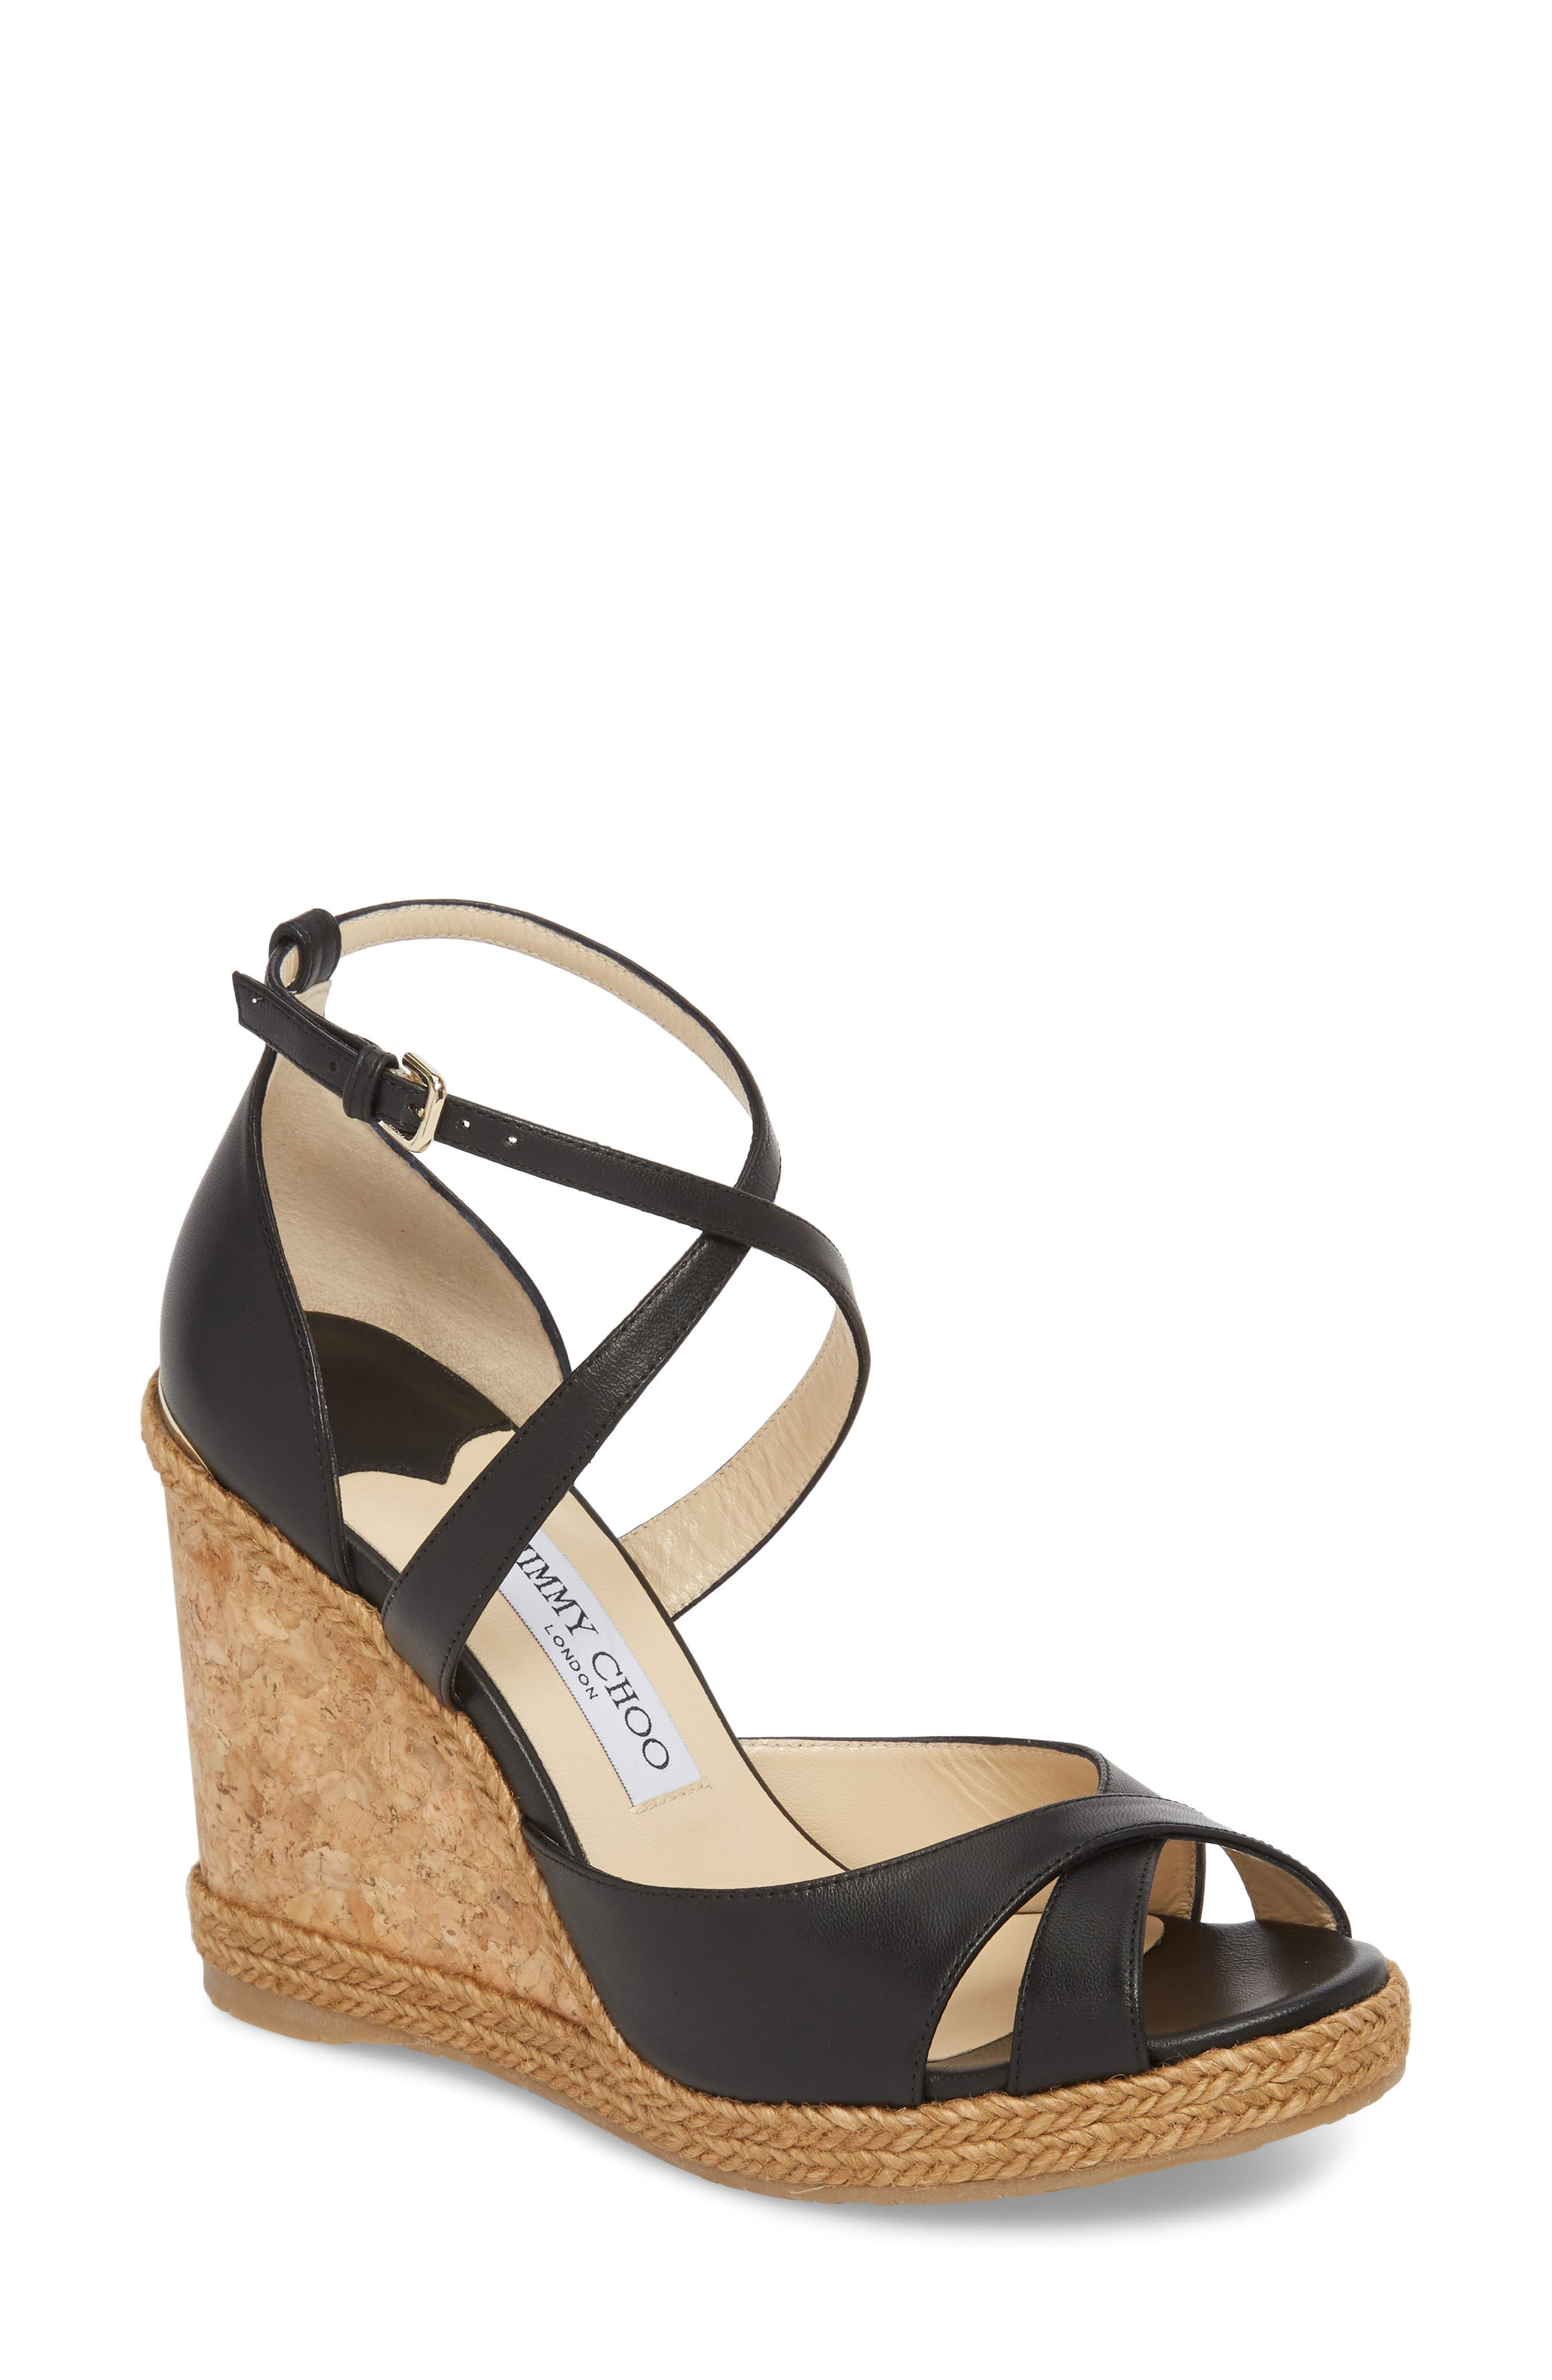 JIMMY CHOO, Alanah Espadrille Wedge Sandal, Main thumbnail 1, color, BLACK